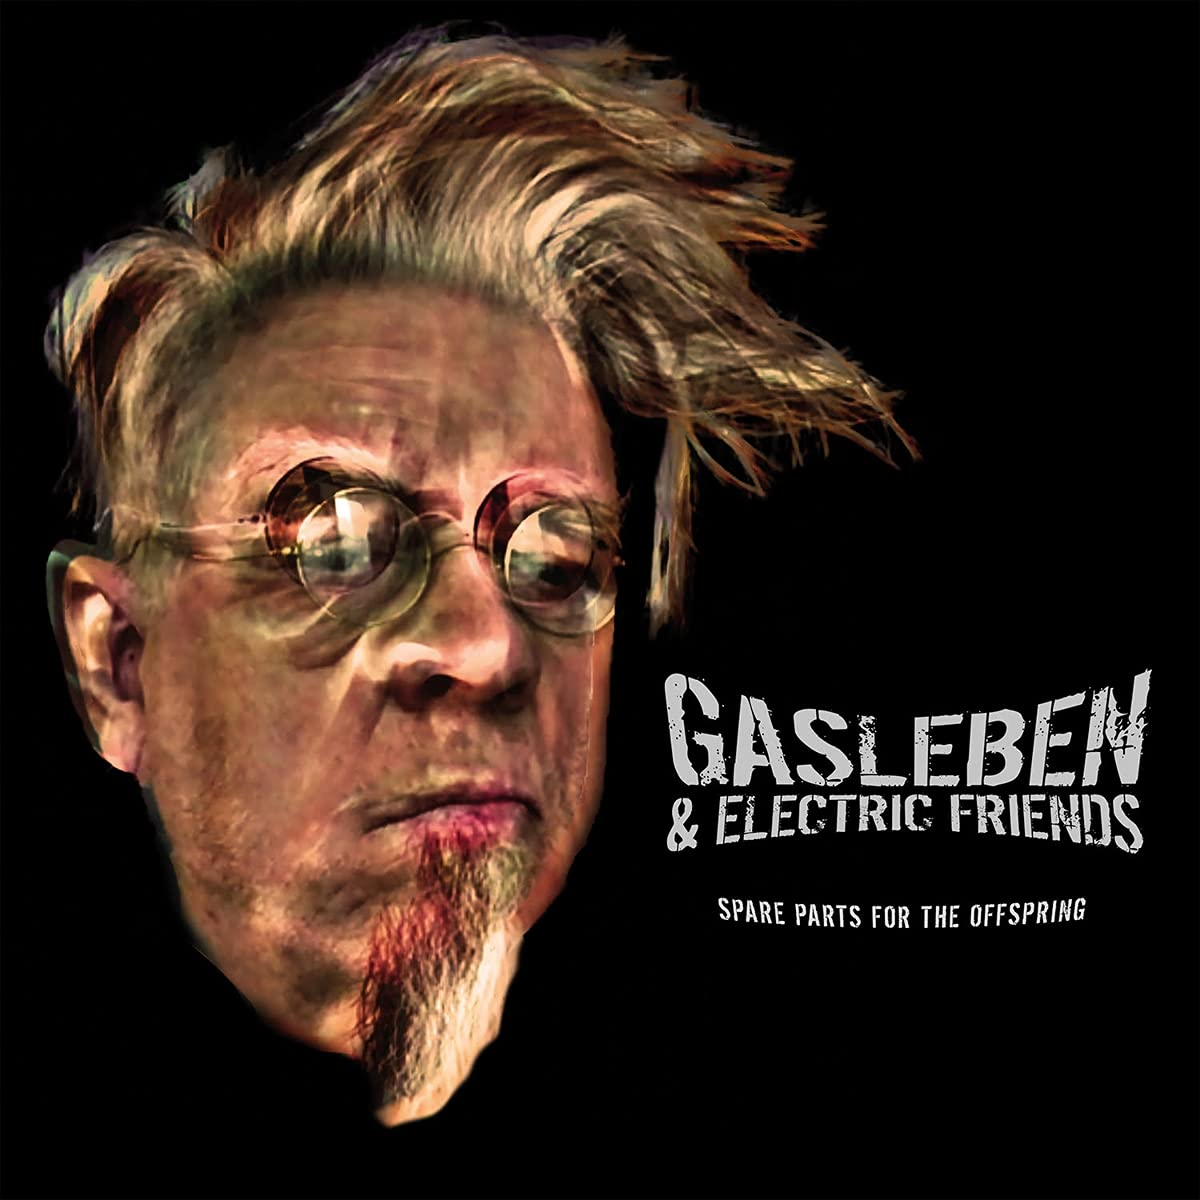 Gasleben & Electric Friends - Spare Parts For The Offspring (2021) [FLAC] Download